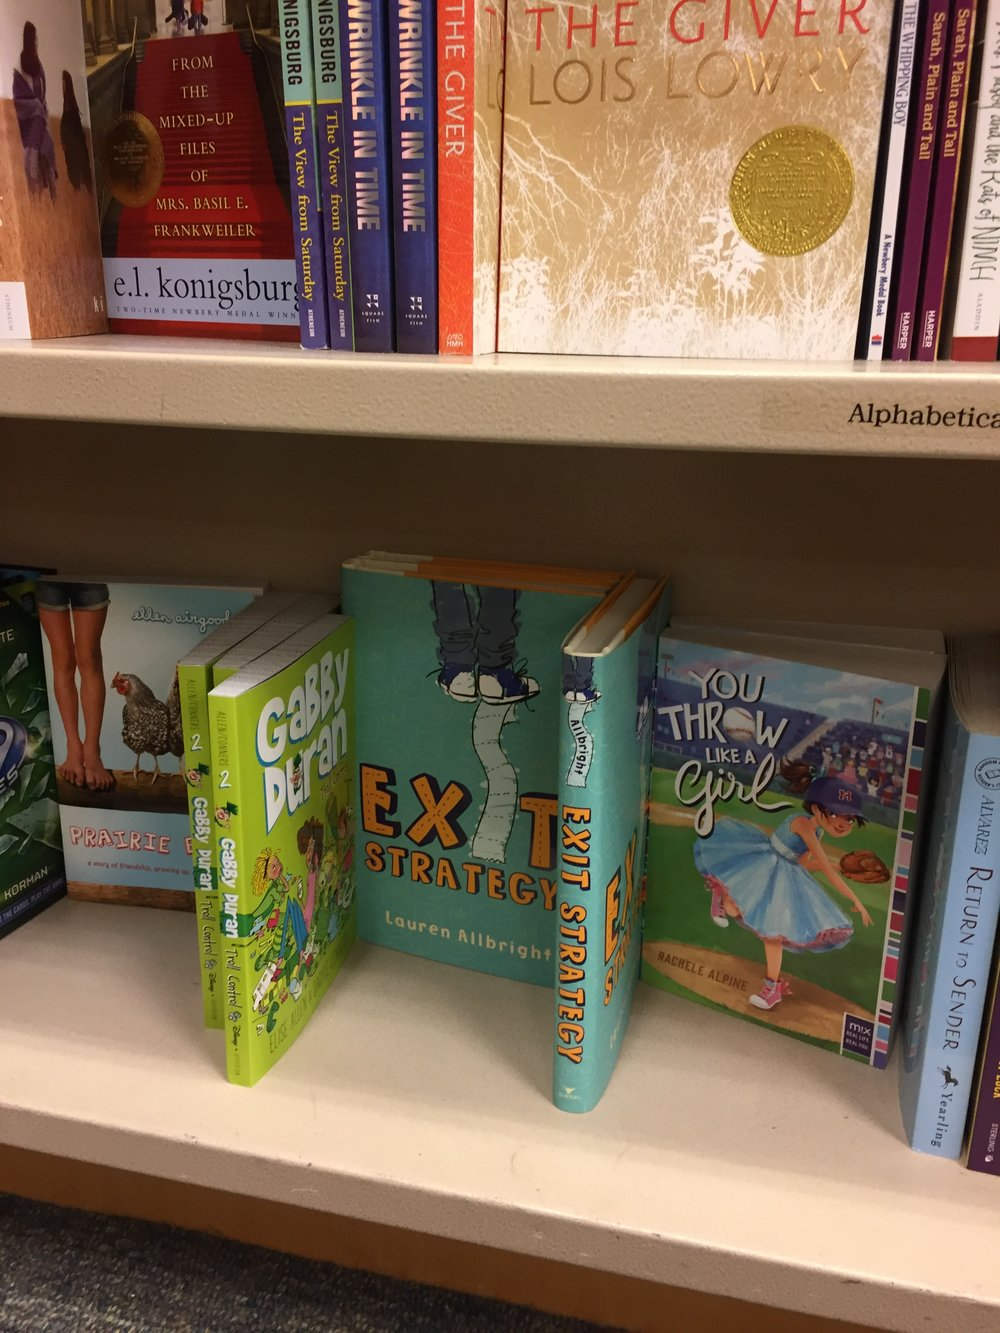 EXIT STRATEGY at the Barnes and Noble on 5th Avenue.